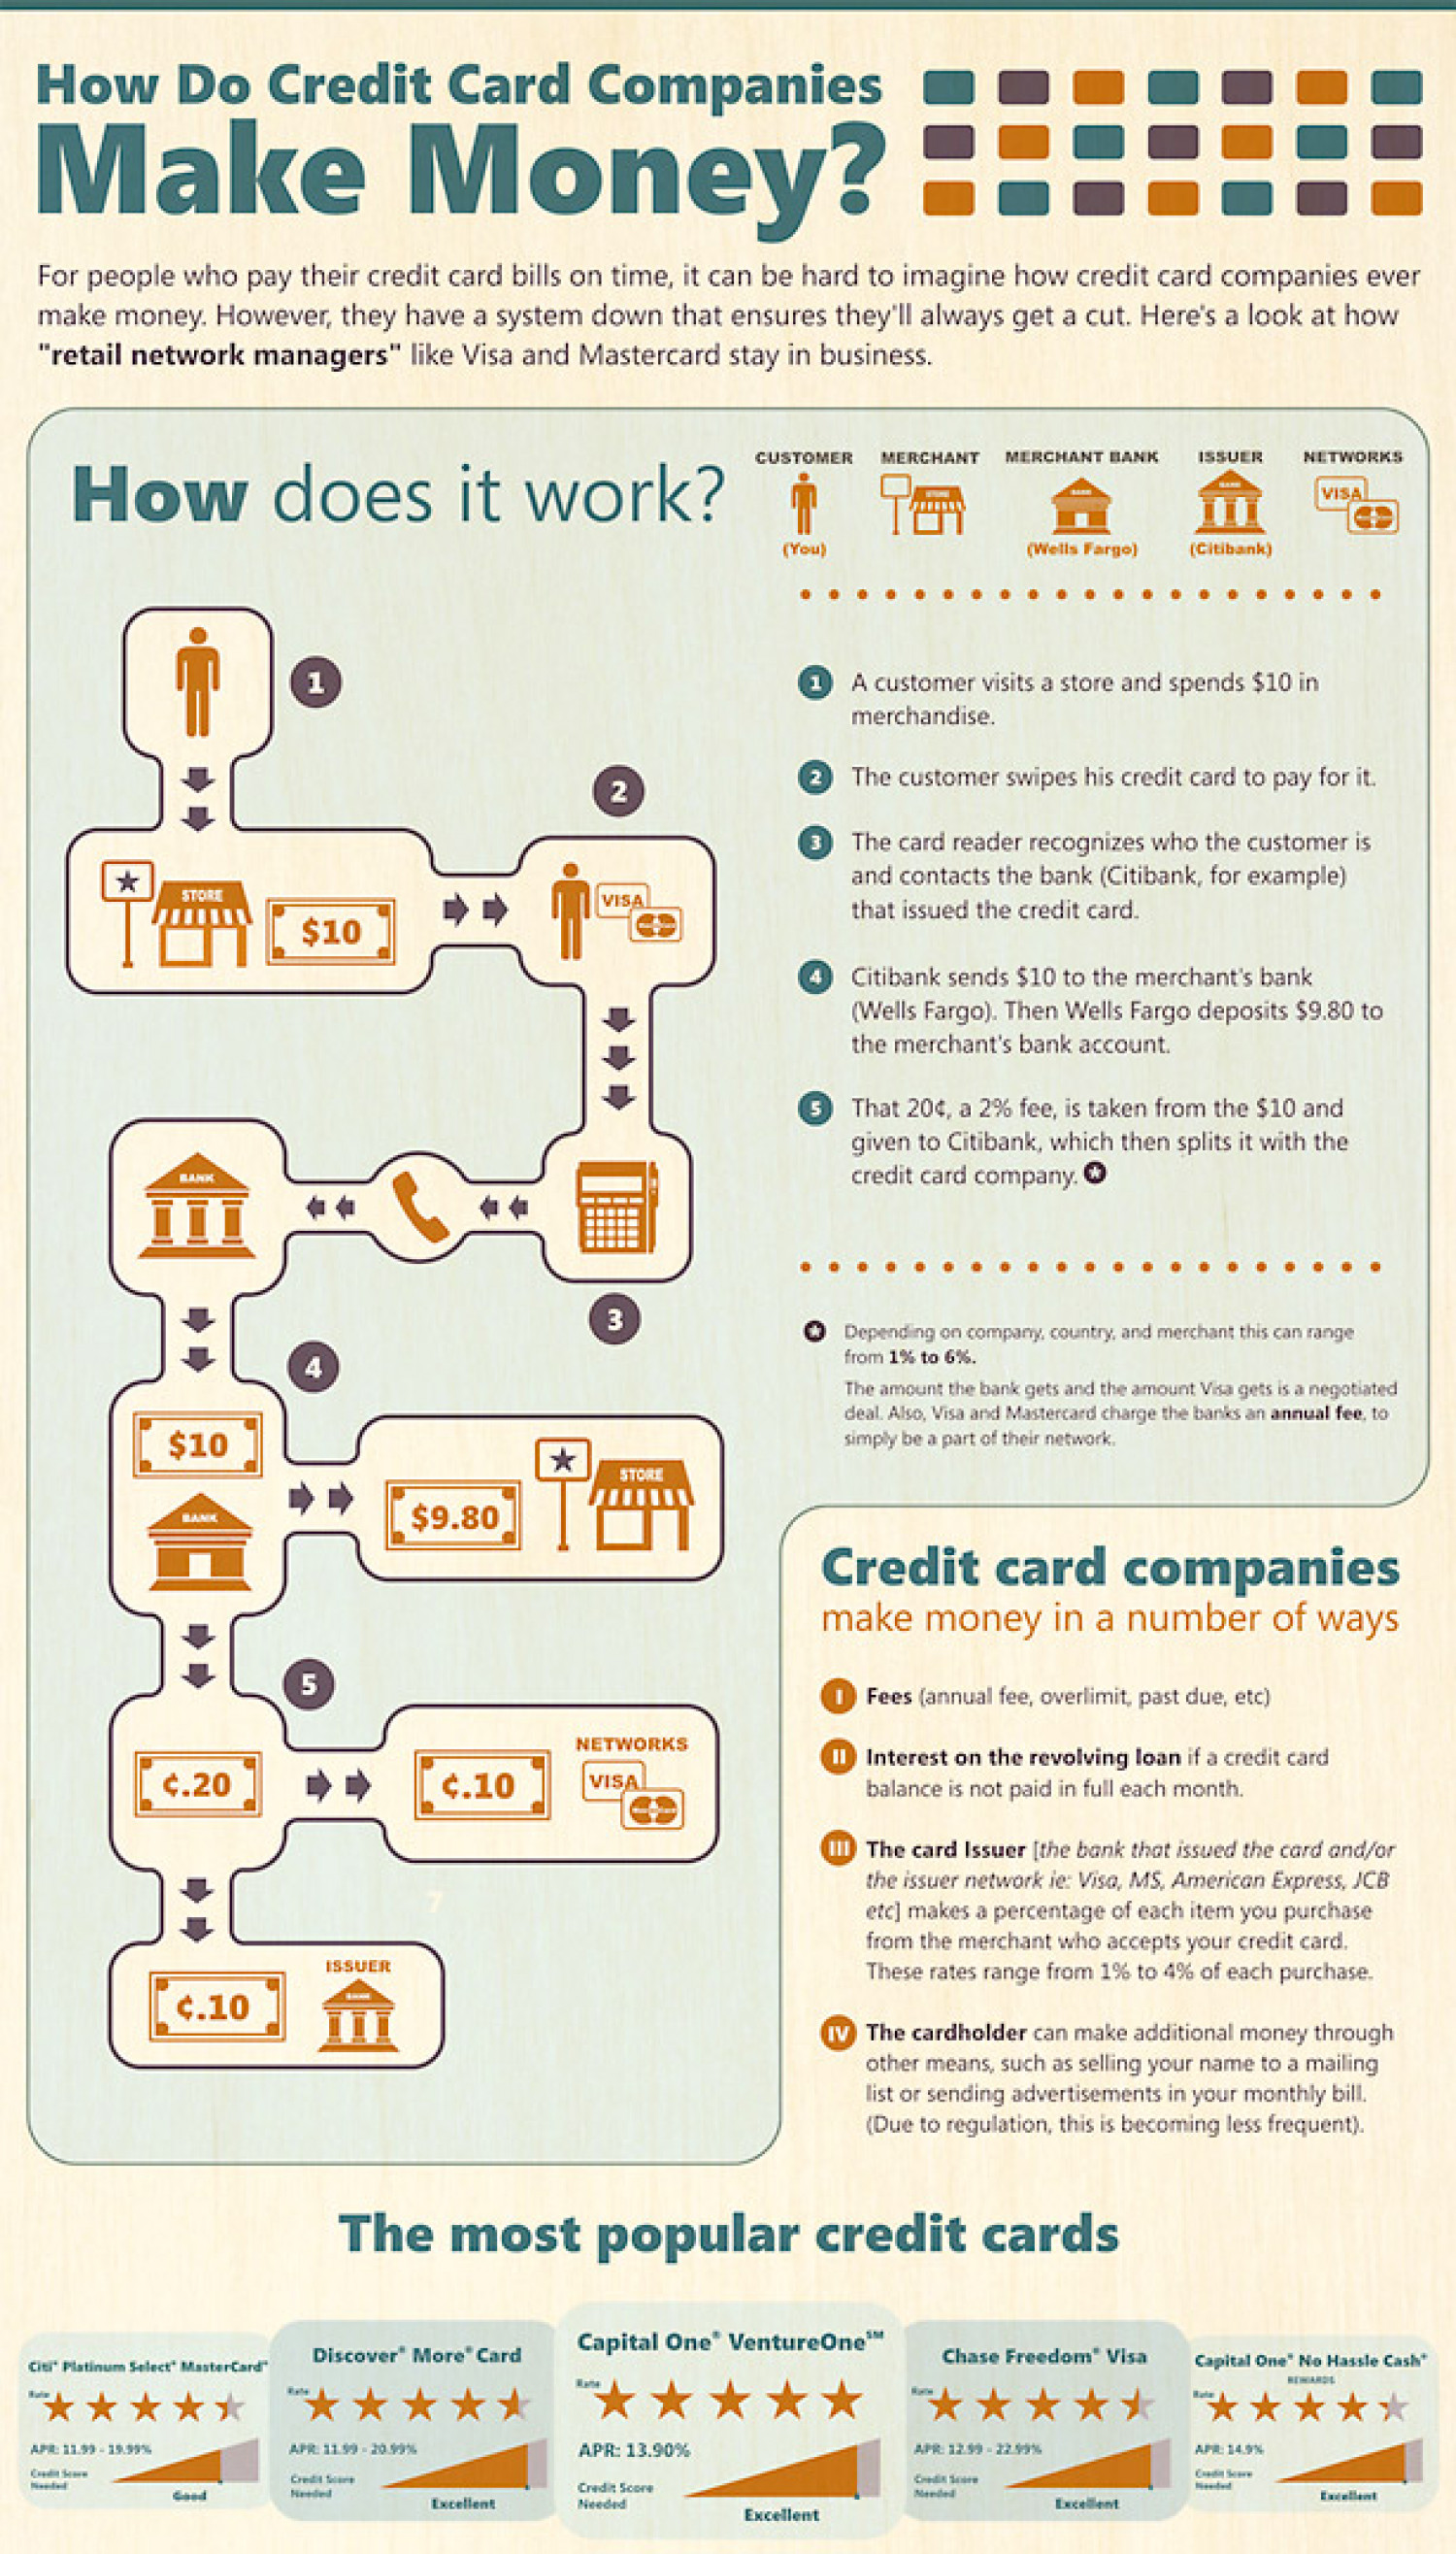 How Do Credit Card Companies Make Money? Infographic